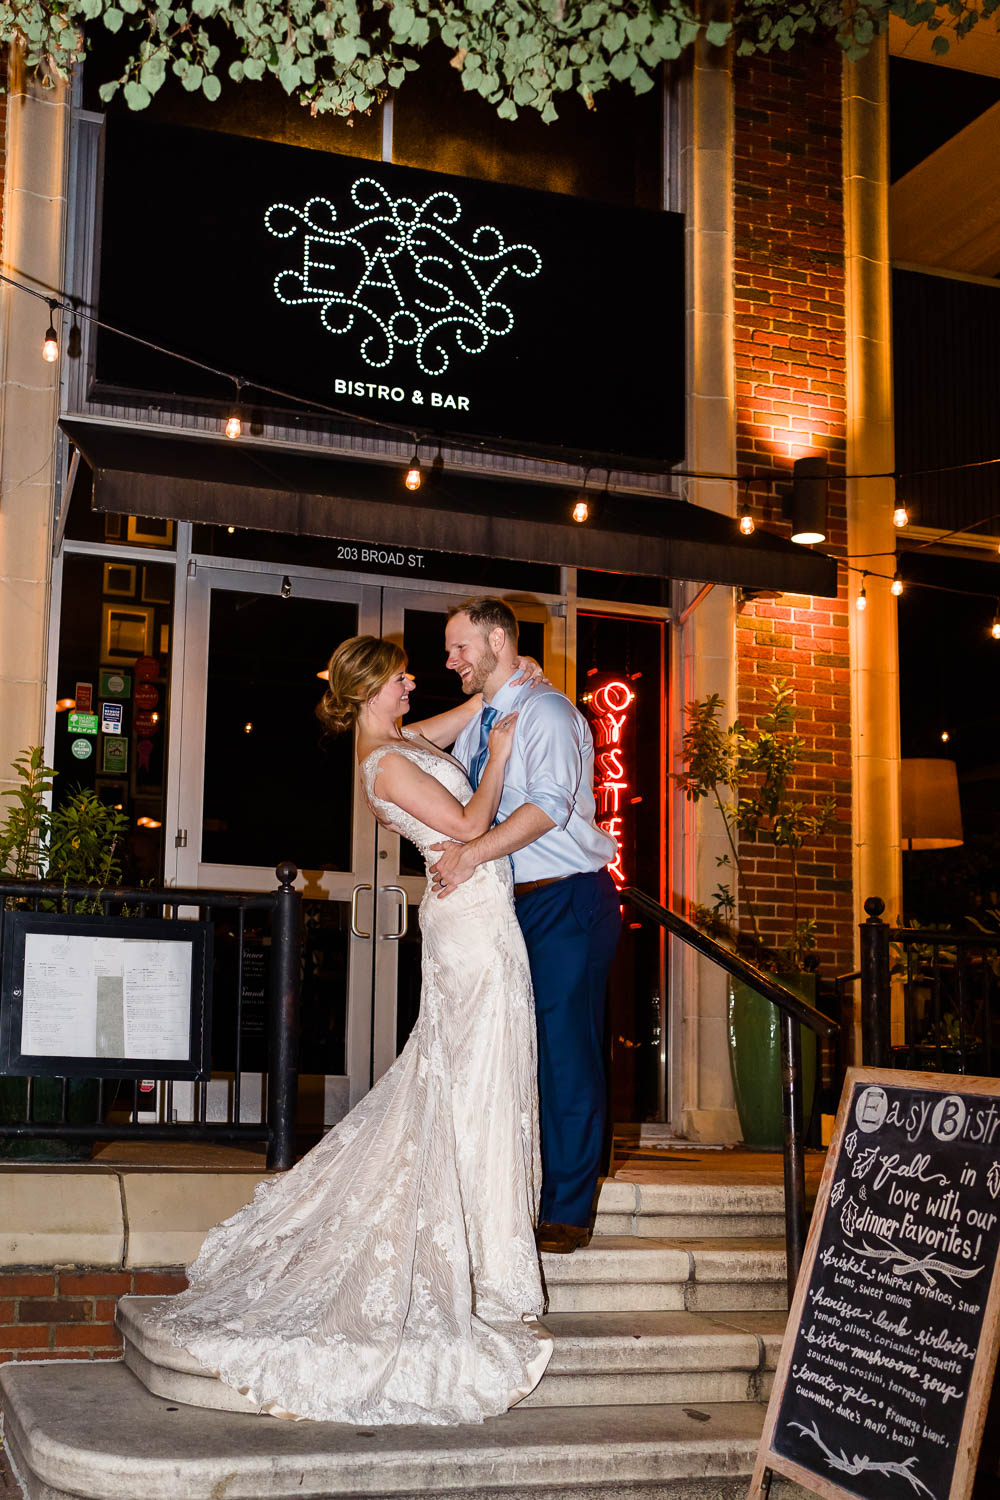 Surprise wedding portraits out in front of EasyBistro in Chattanooga